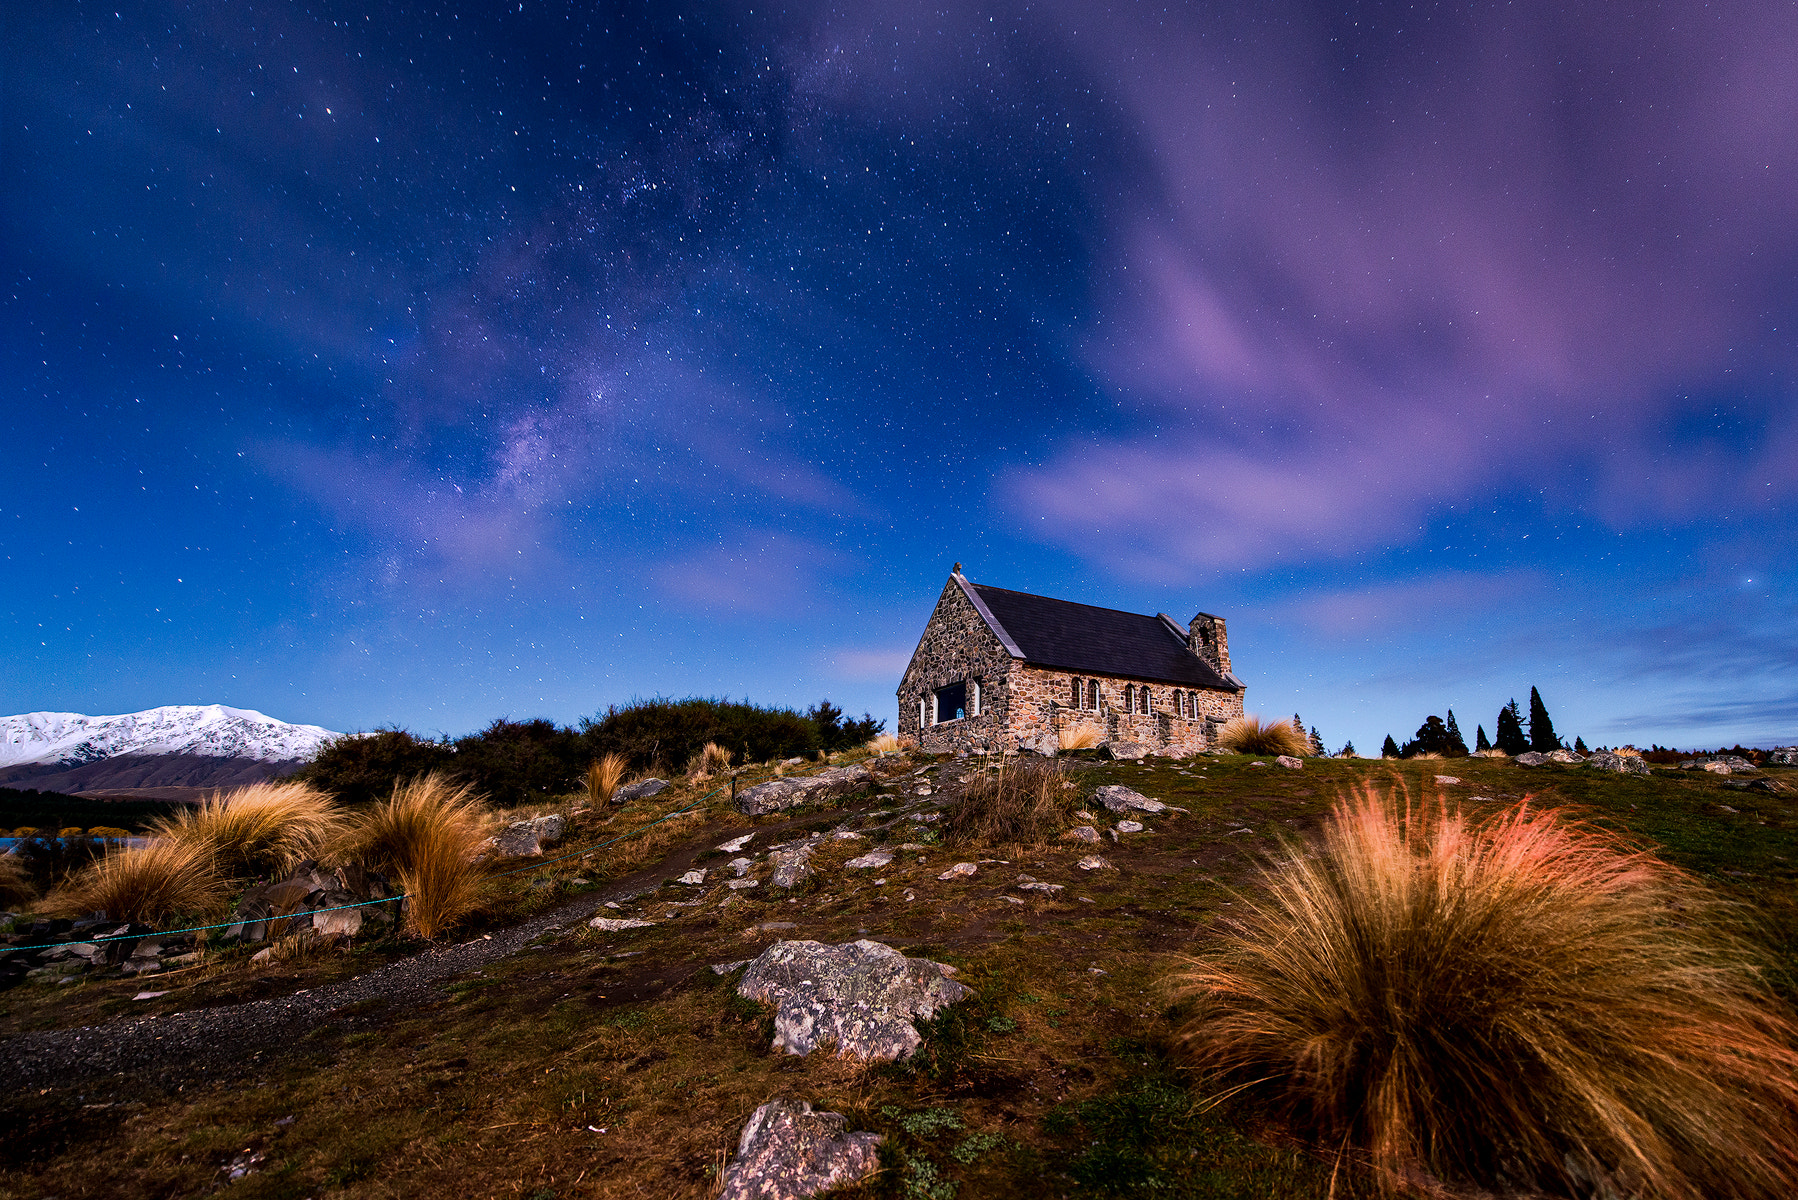 Photograph Church of the Good Shepherd at Night by Danny Xeero on 500px